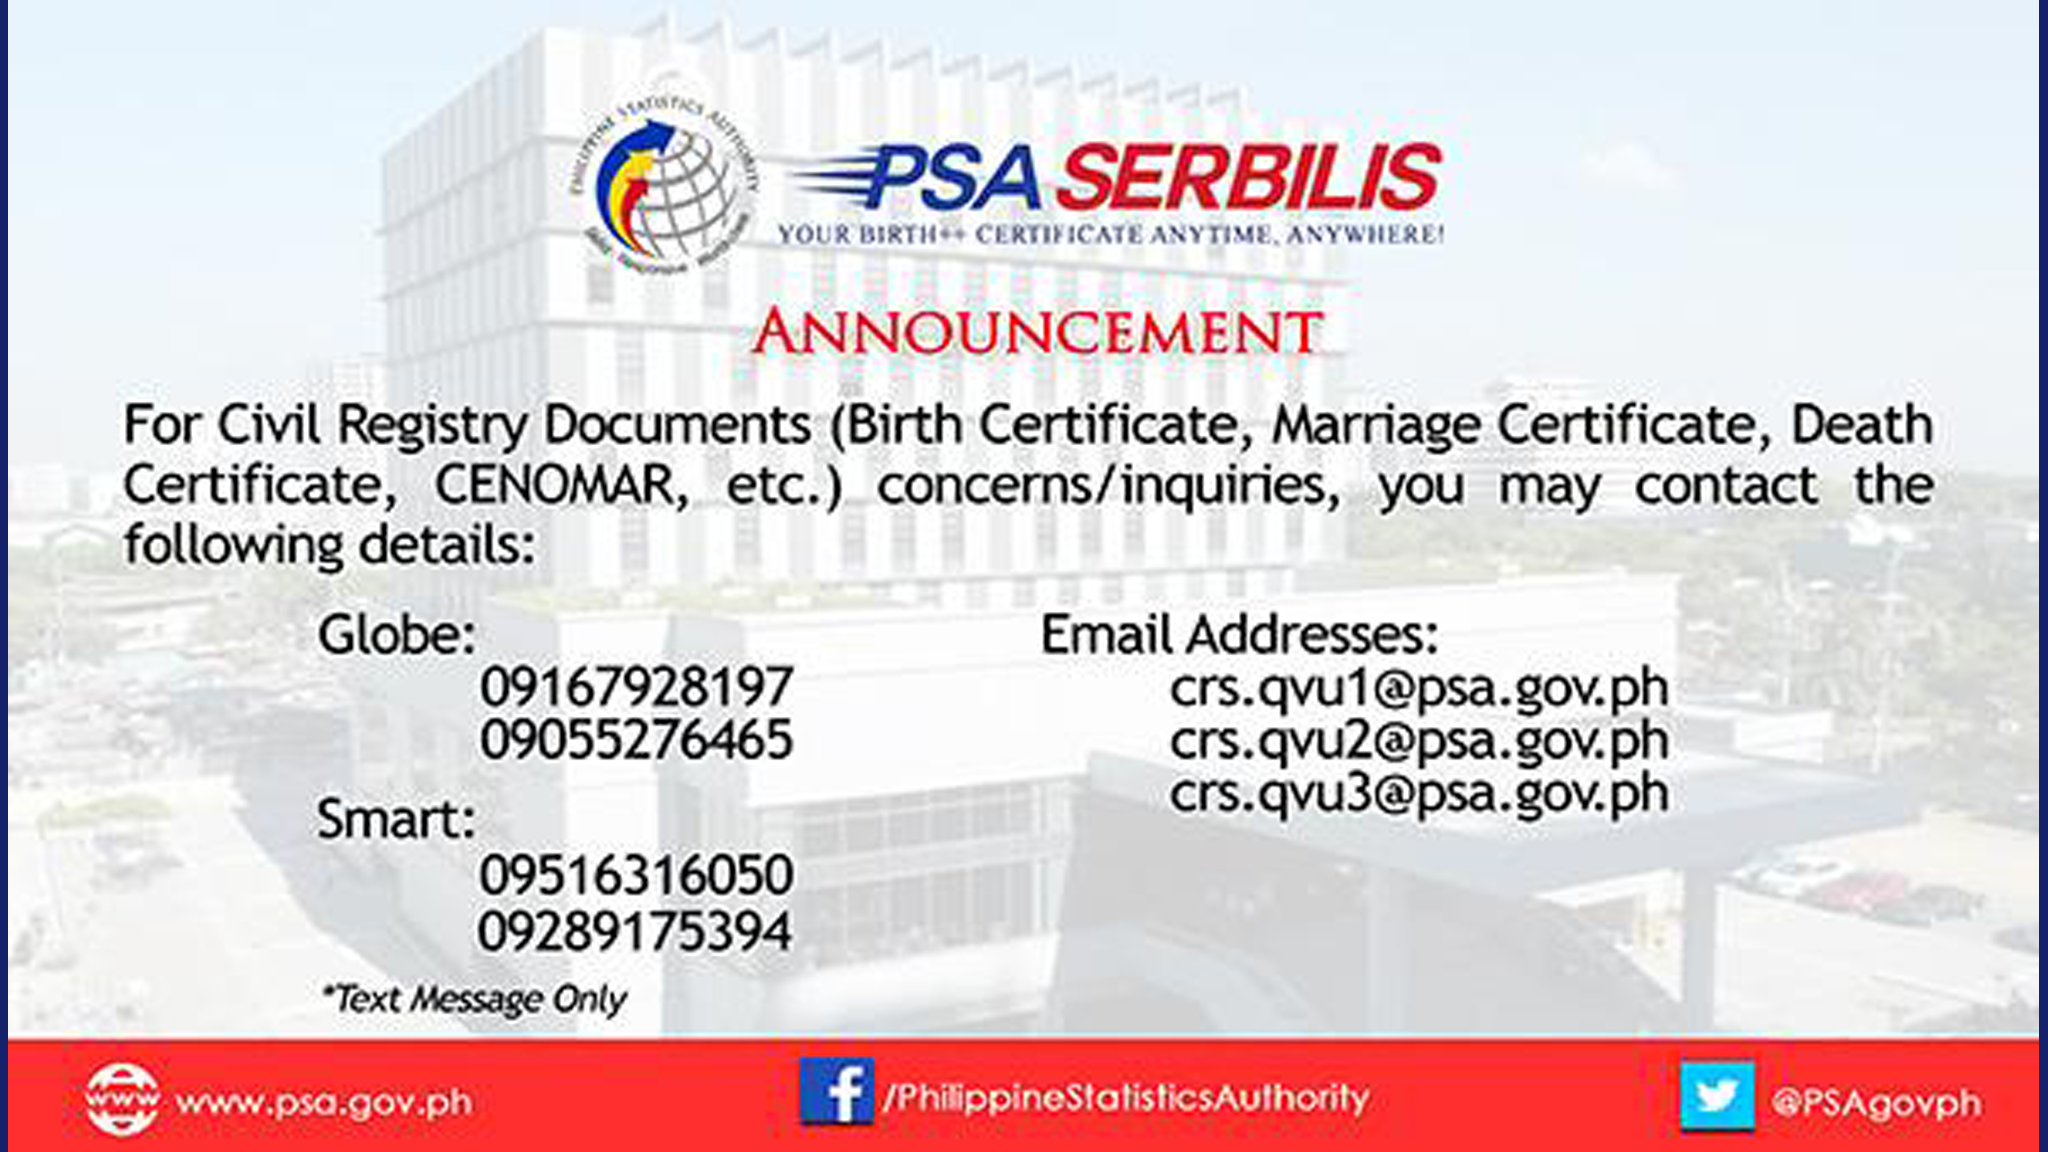 PSA Serbilis Announcement